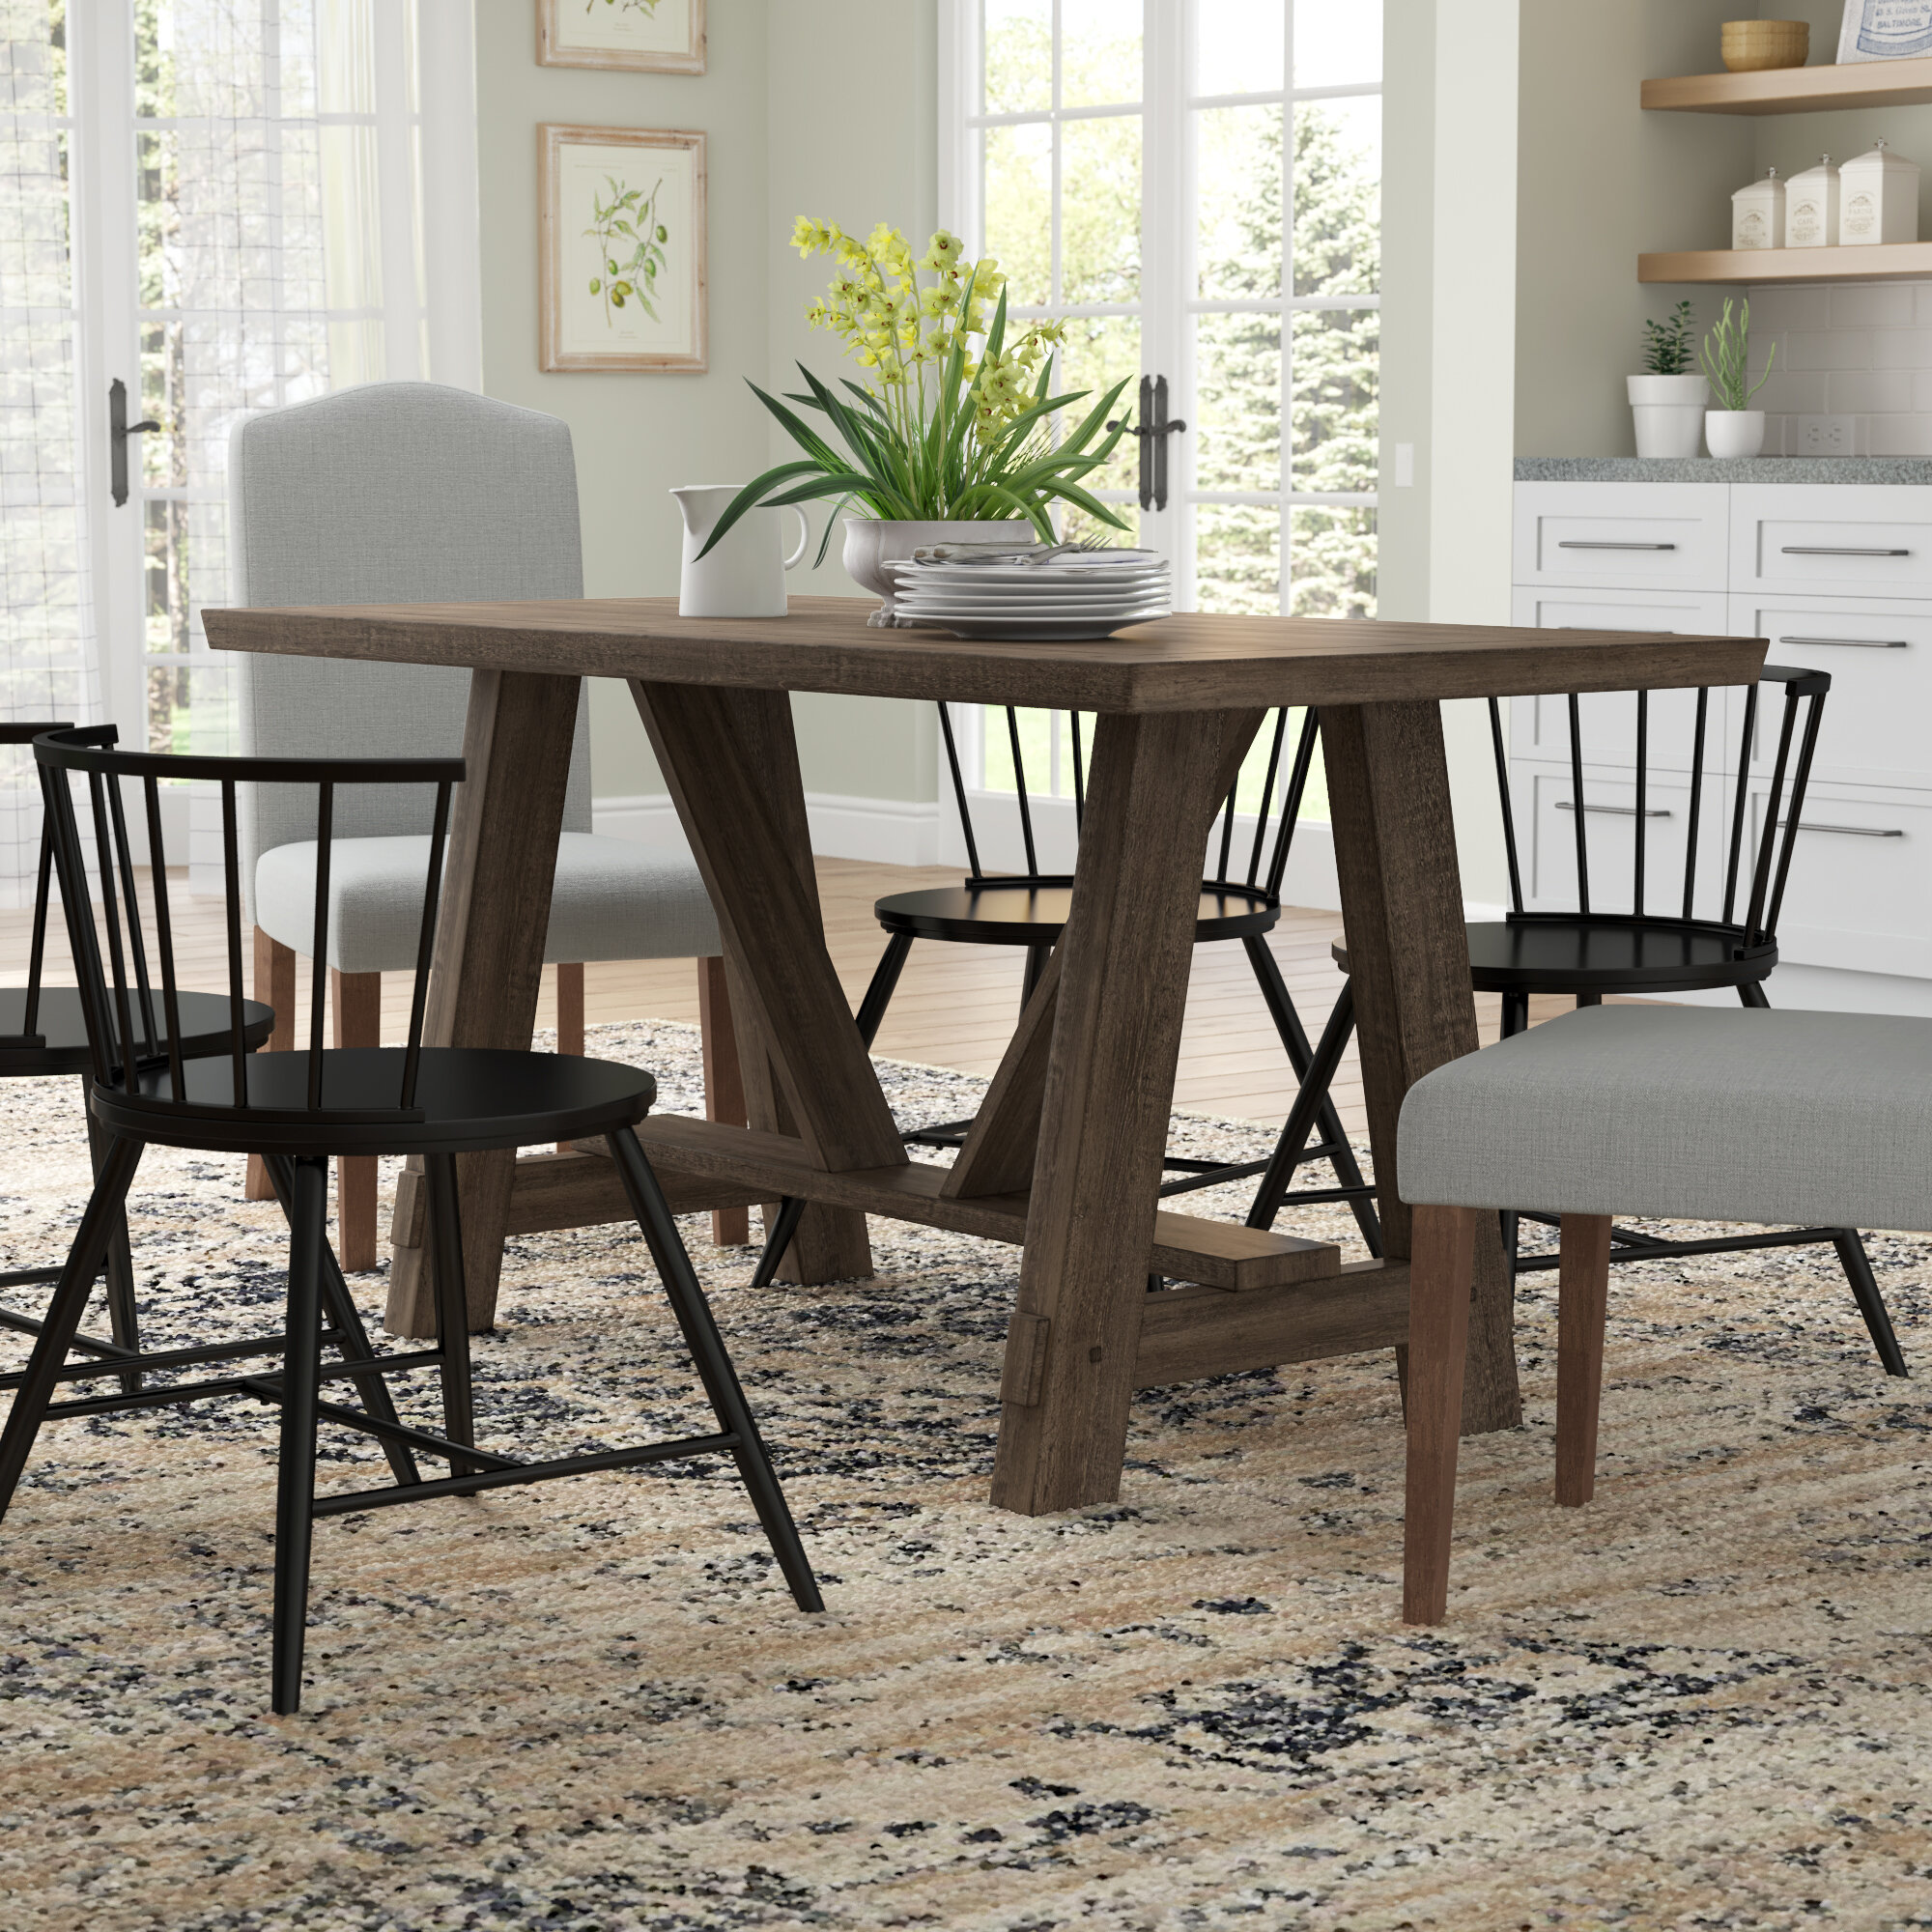 Gracie Oaks Leming Farmhouse Style Trestle Dining Table & Reviews